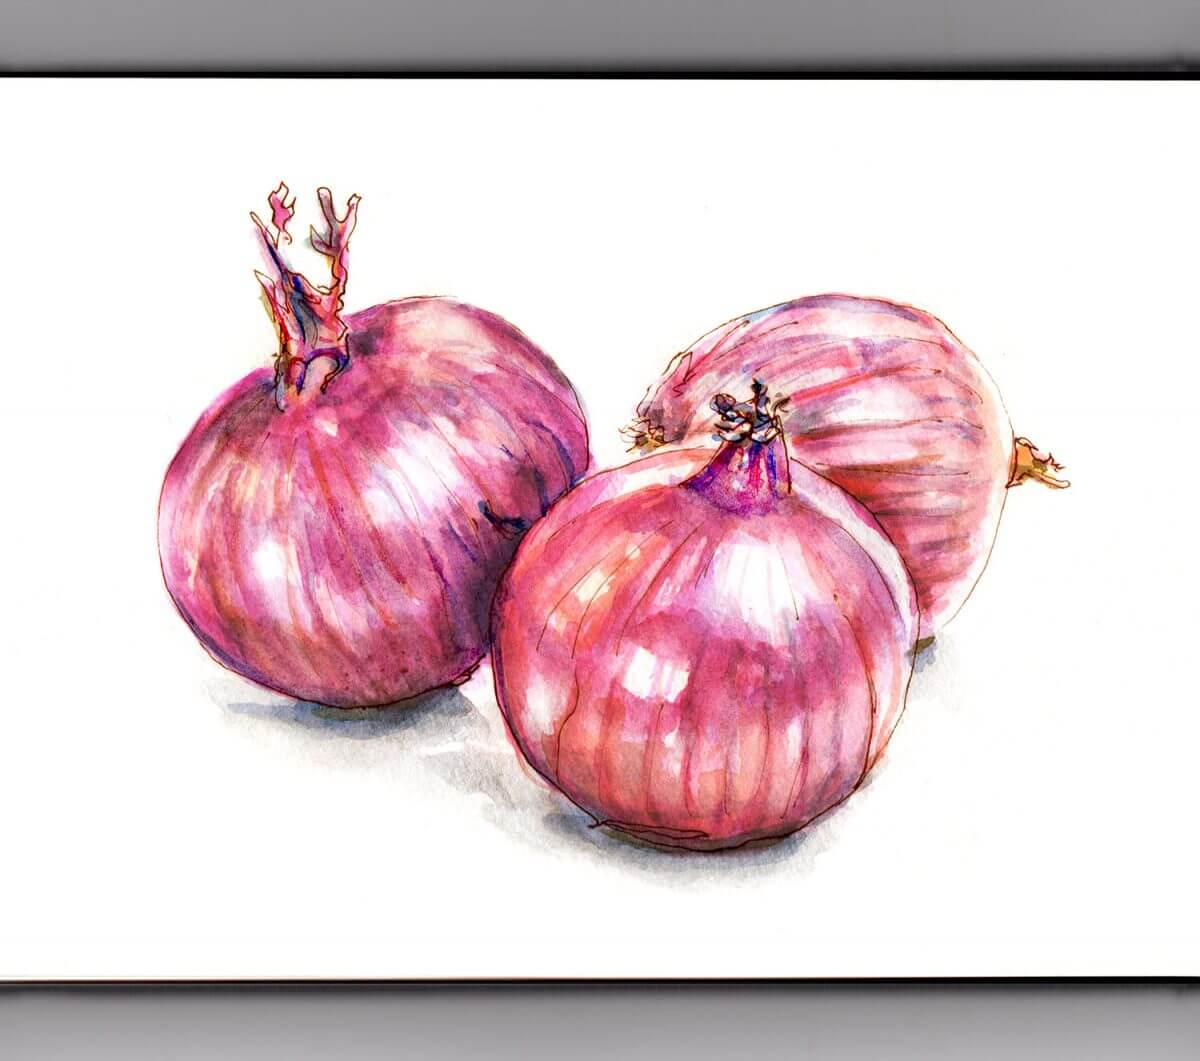 #WorldWatercolorGroup - Day 5 - Red Onions Aren't Red - Doodlewash